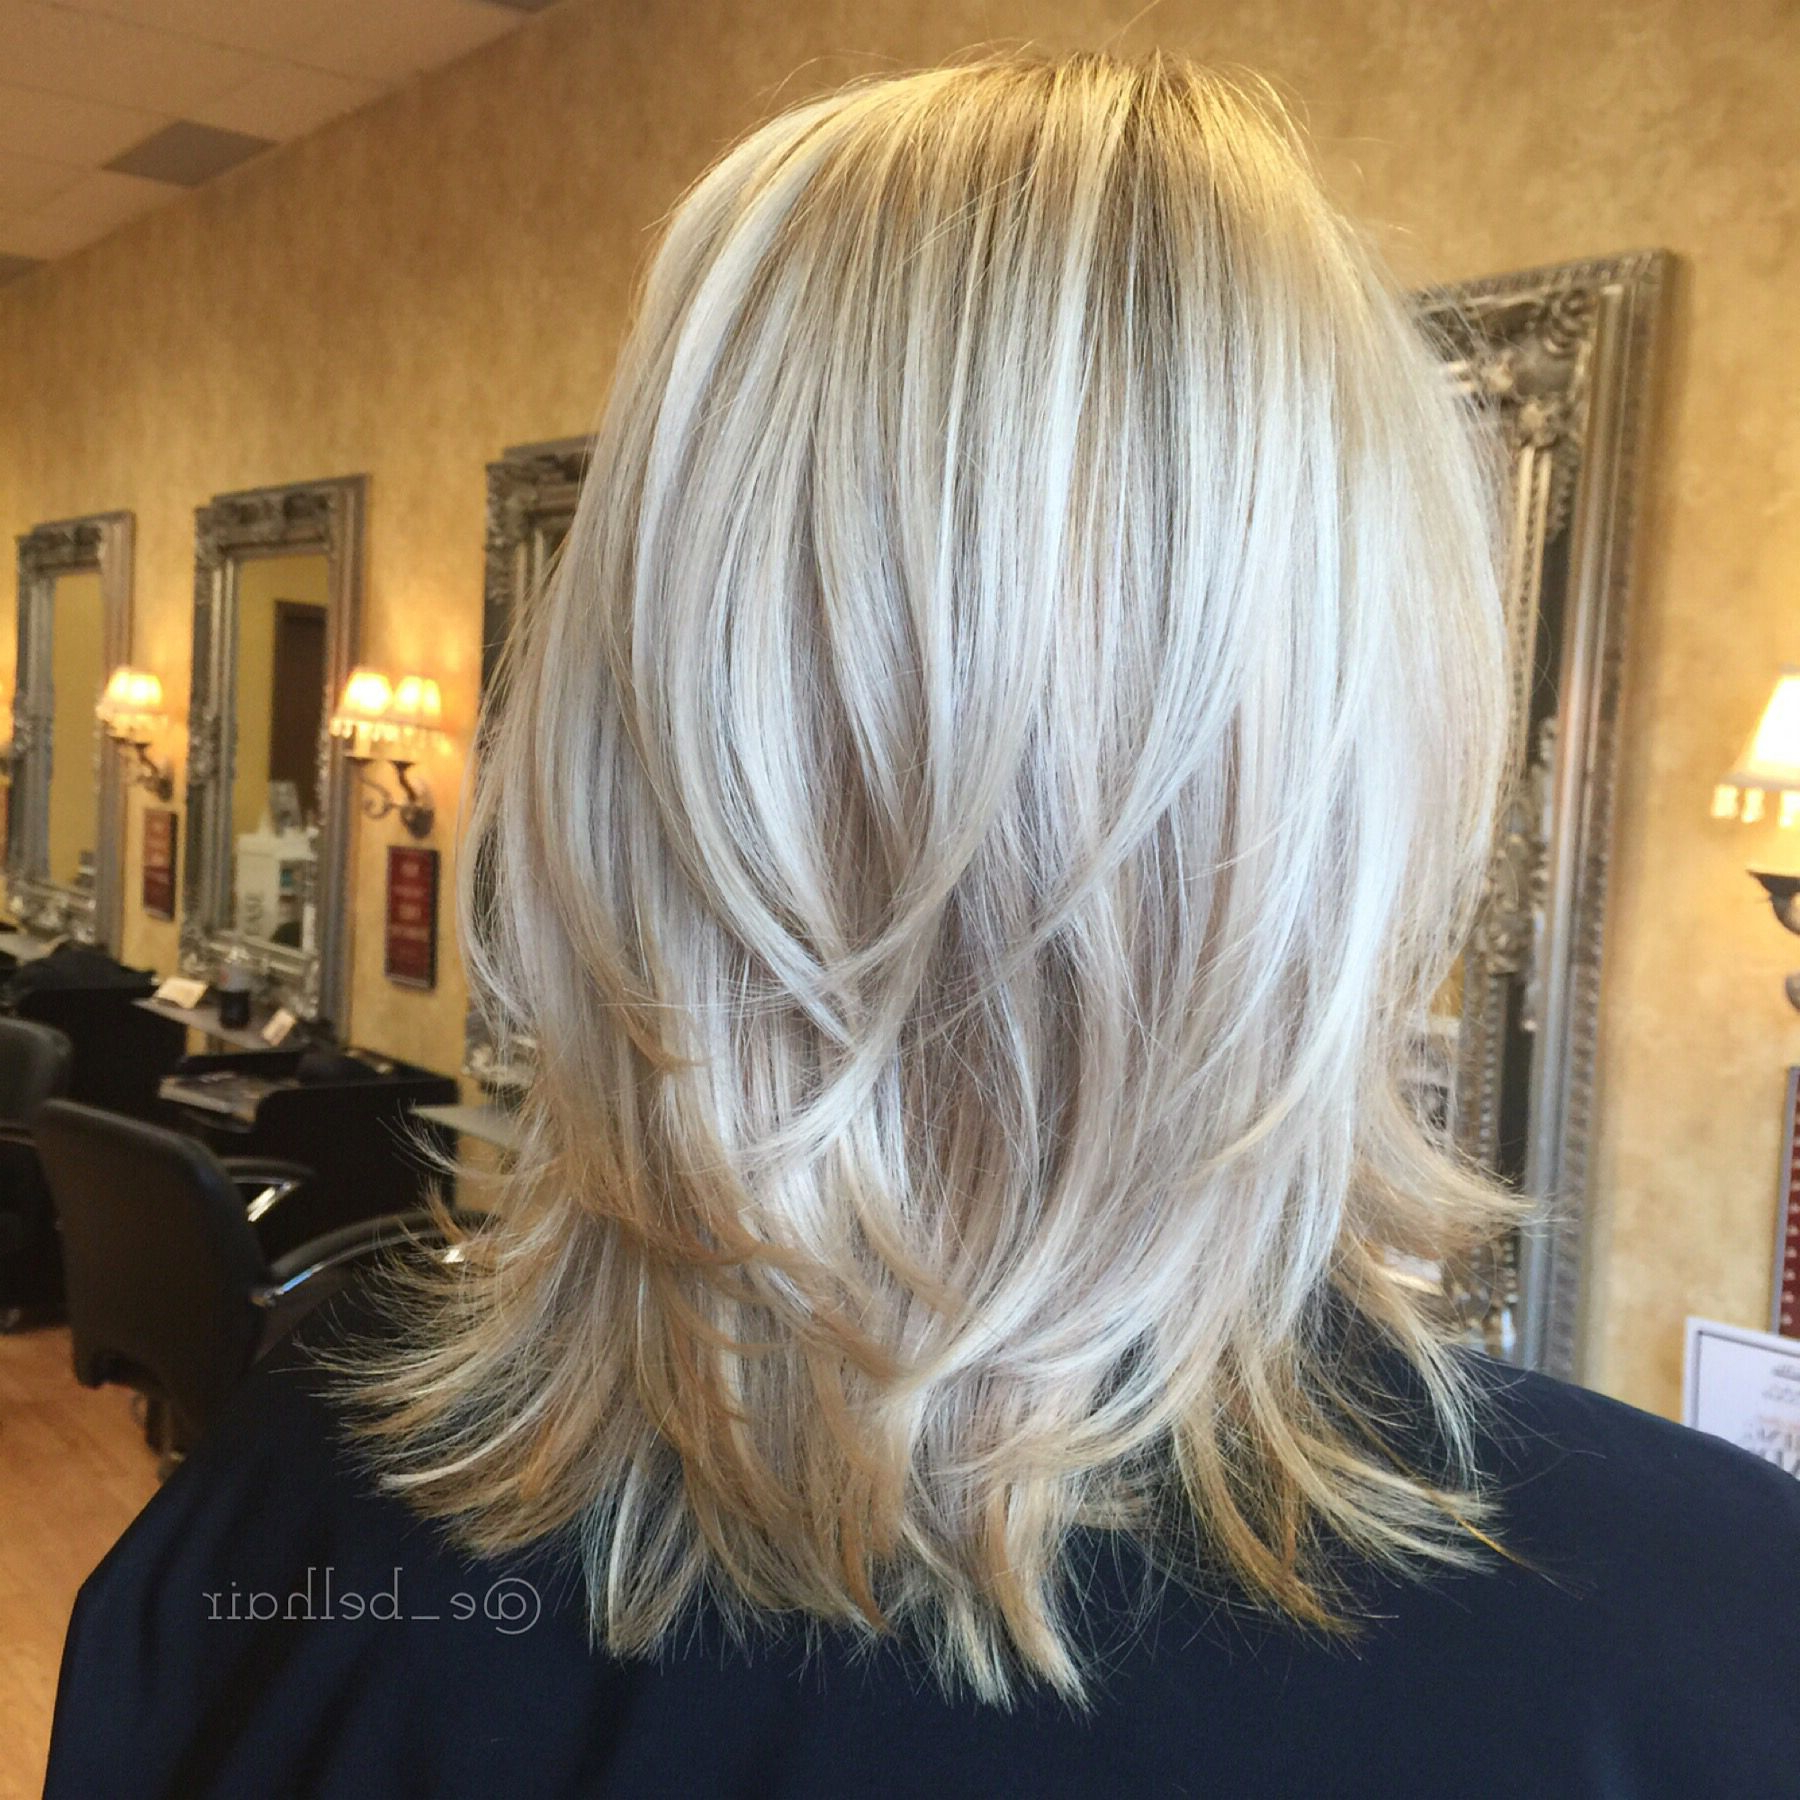 Shoulder Length Cut With Tousled Layers And Fresh Blonde Color (Gallery 4 of 20)